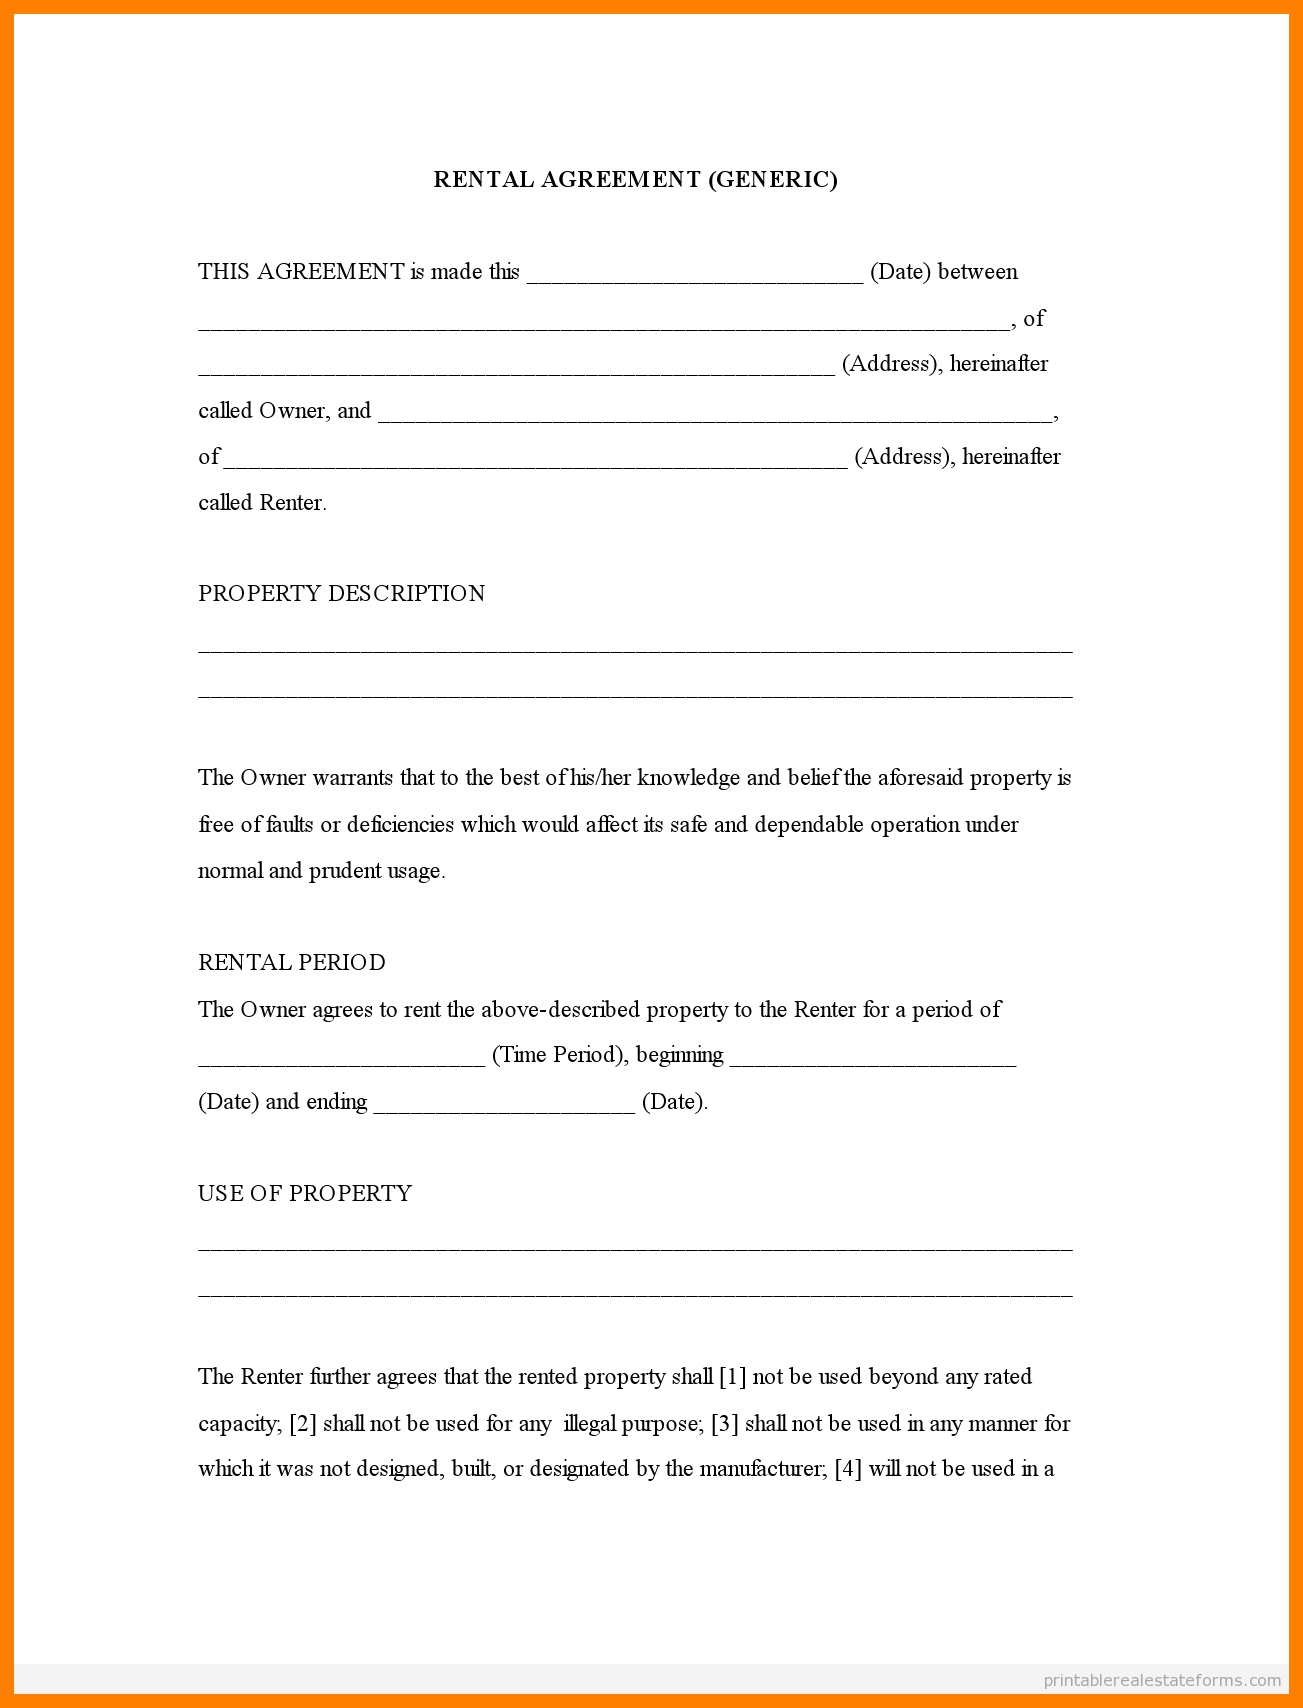 Free Printable Rental Agreement Forms | Bestprintable231118 - Rental Agreement Forms Free Printable